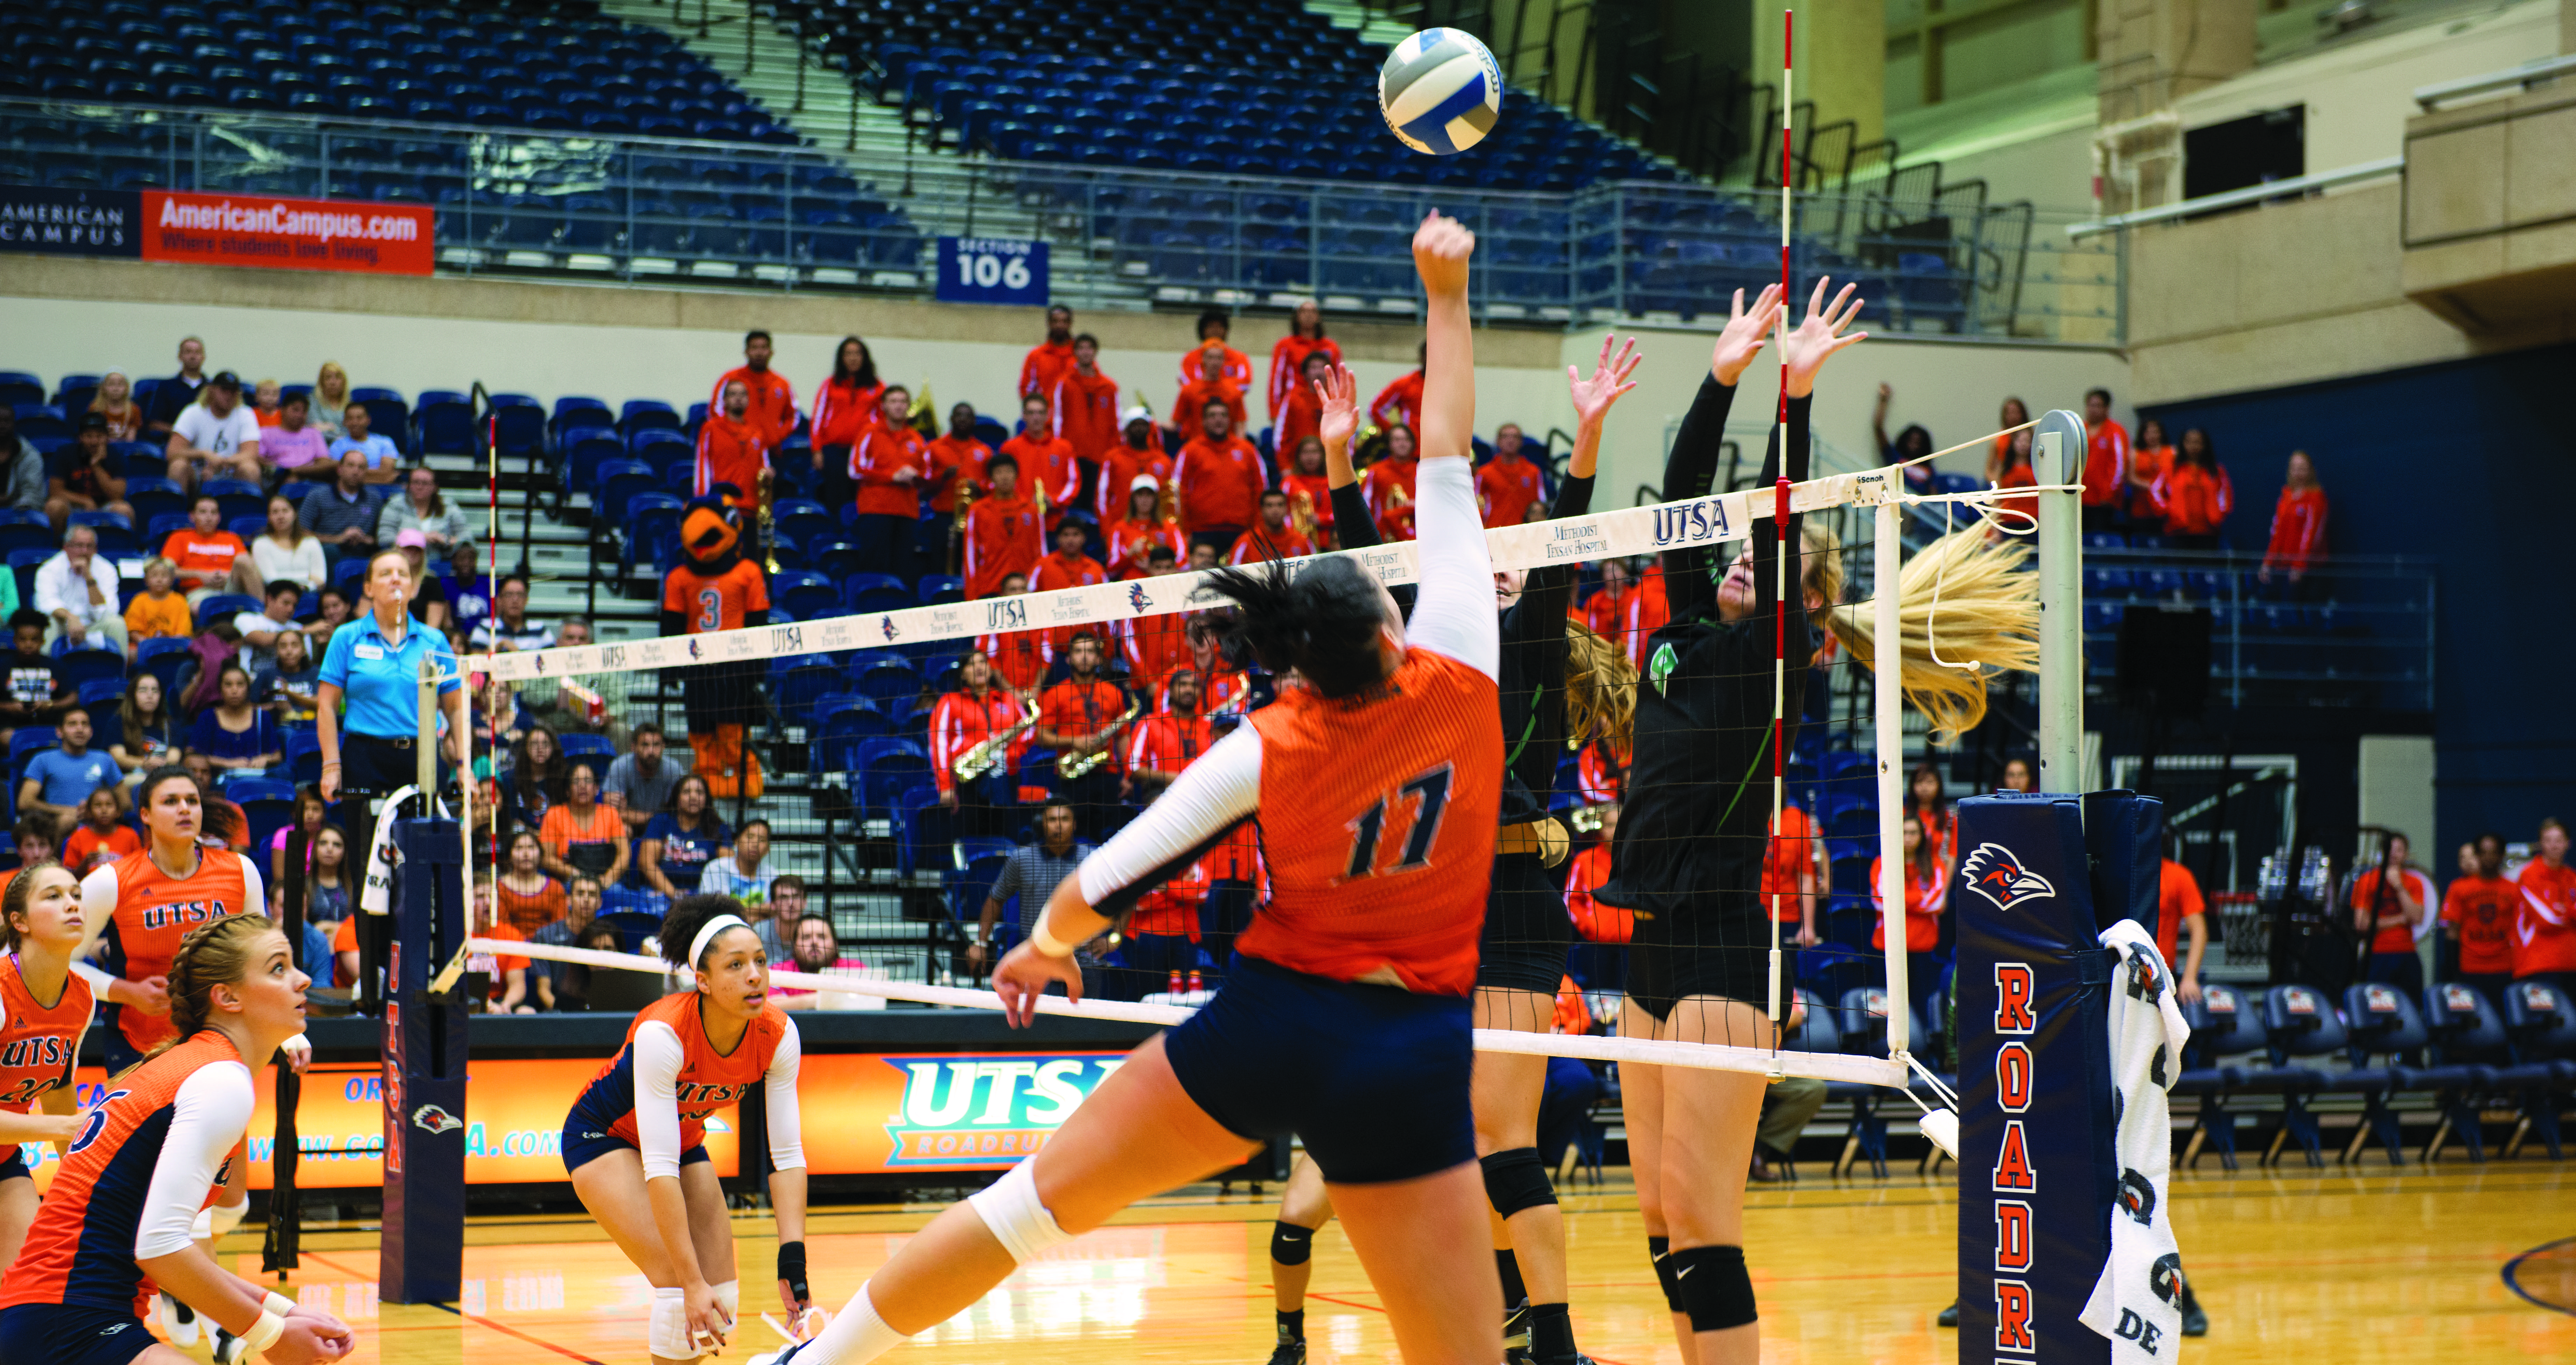 Volleyball player attempts to spike a ball.